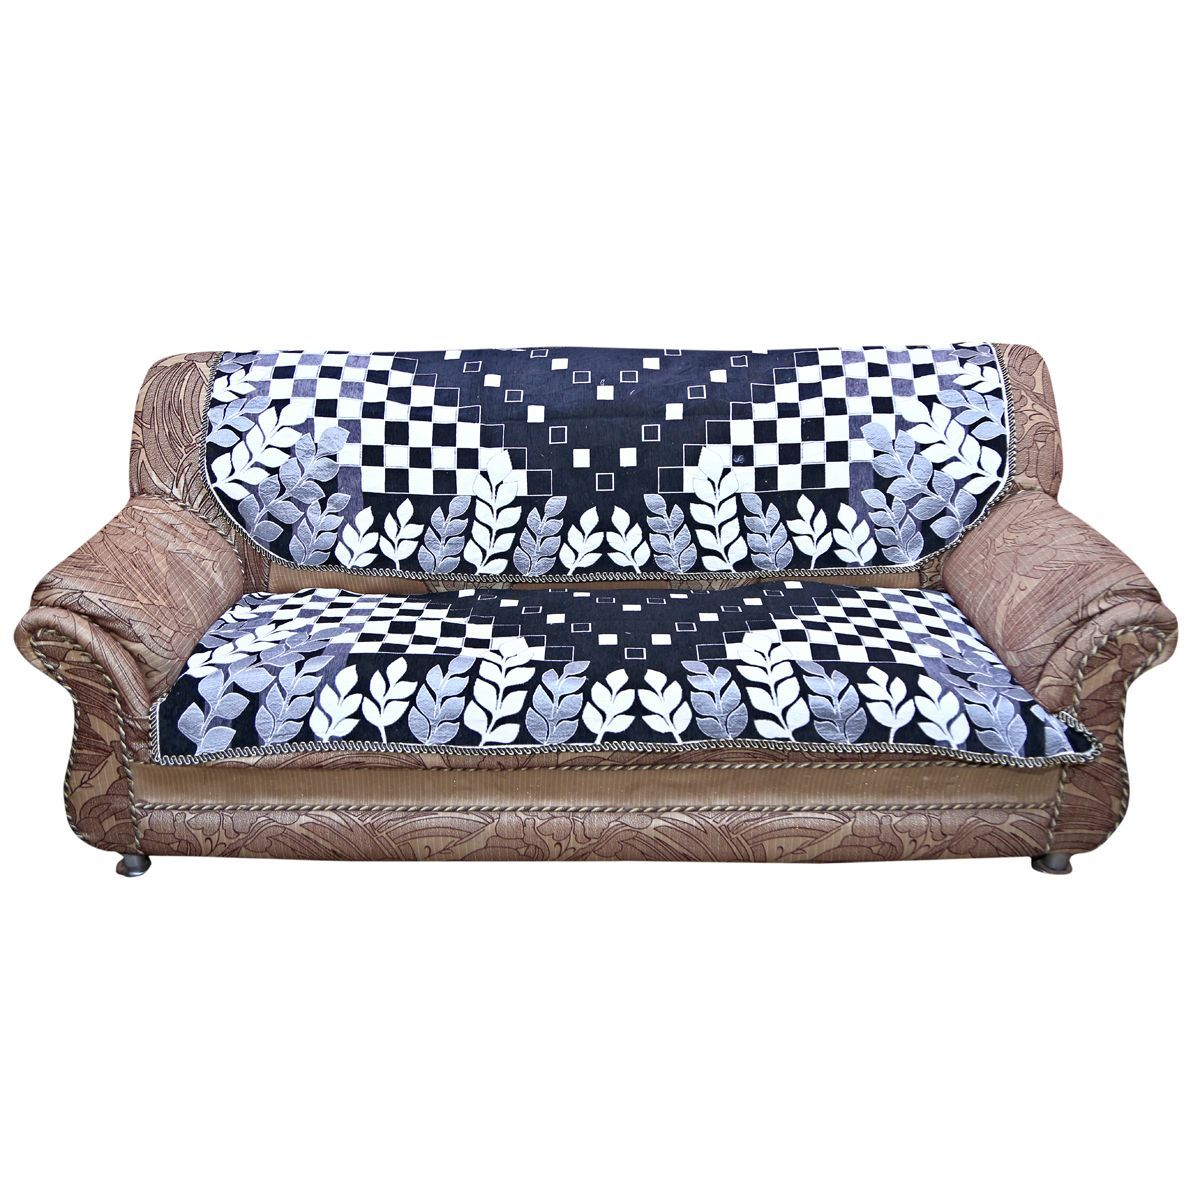 Kuber Industries™ Sofa Cover Heavy Velvet Cloth 5 Seater Set -10 Pieces- Black & White (Exclusive Print)